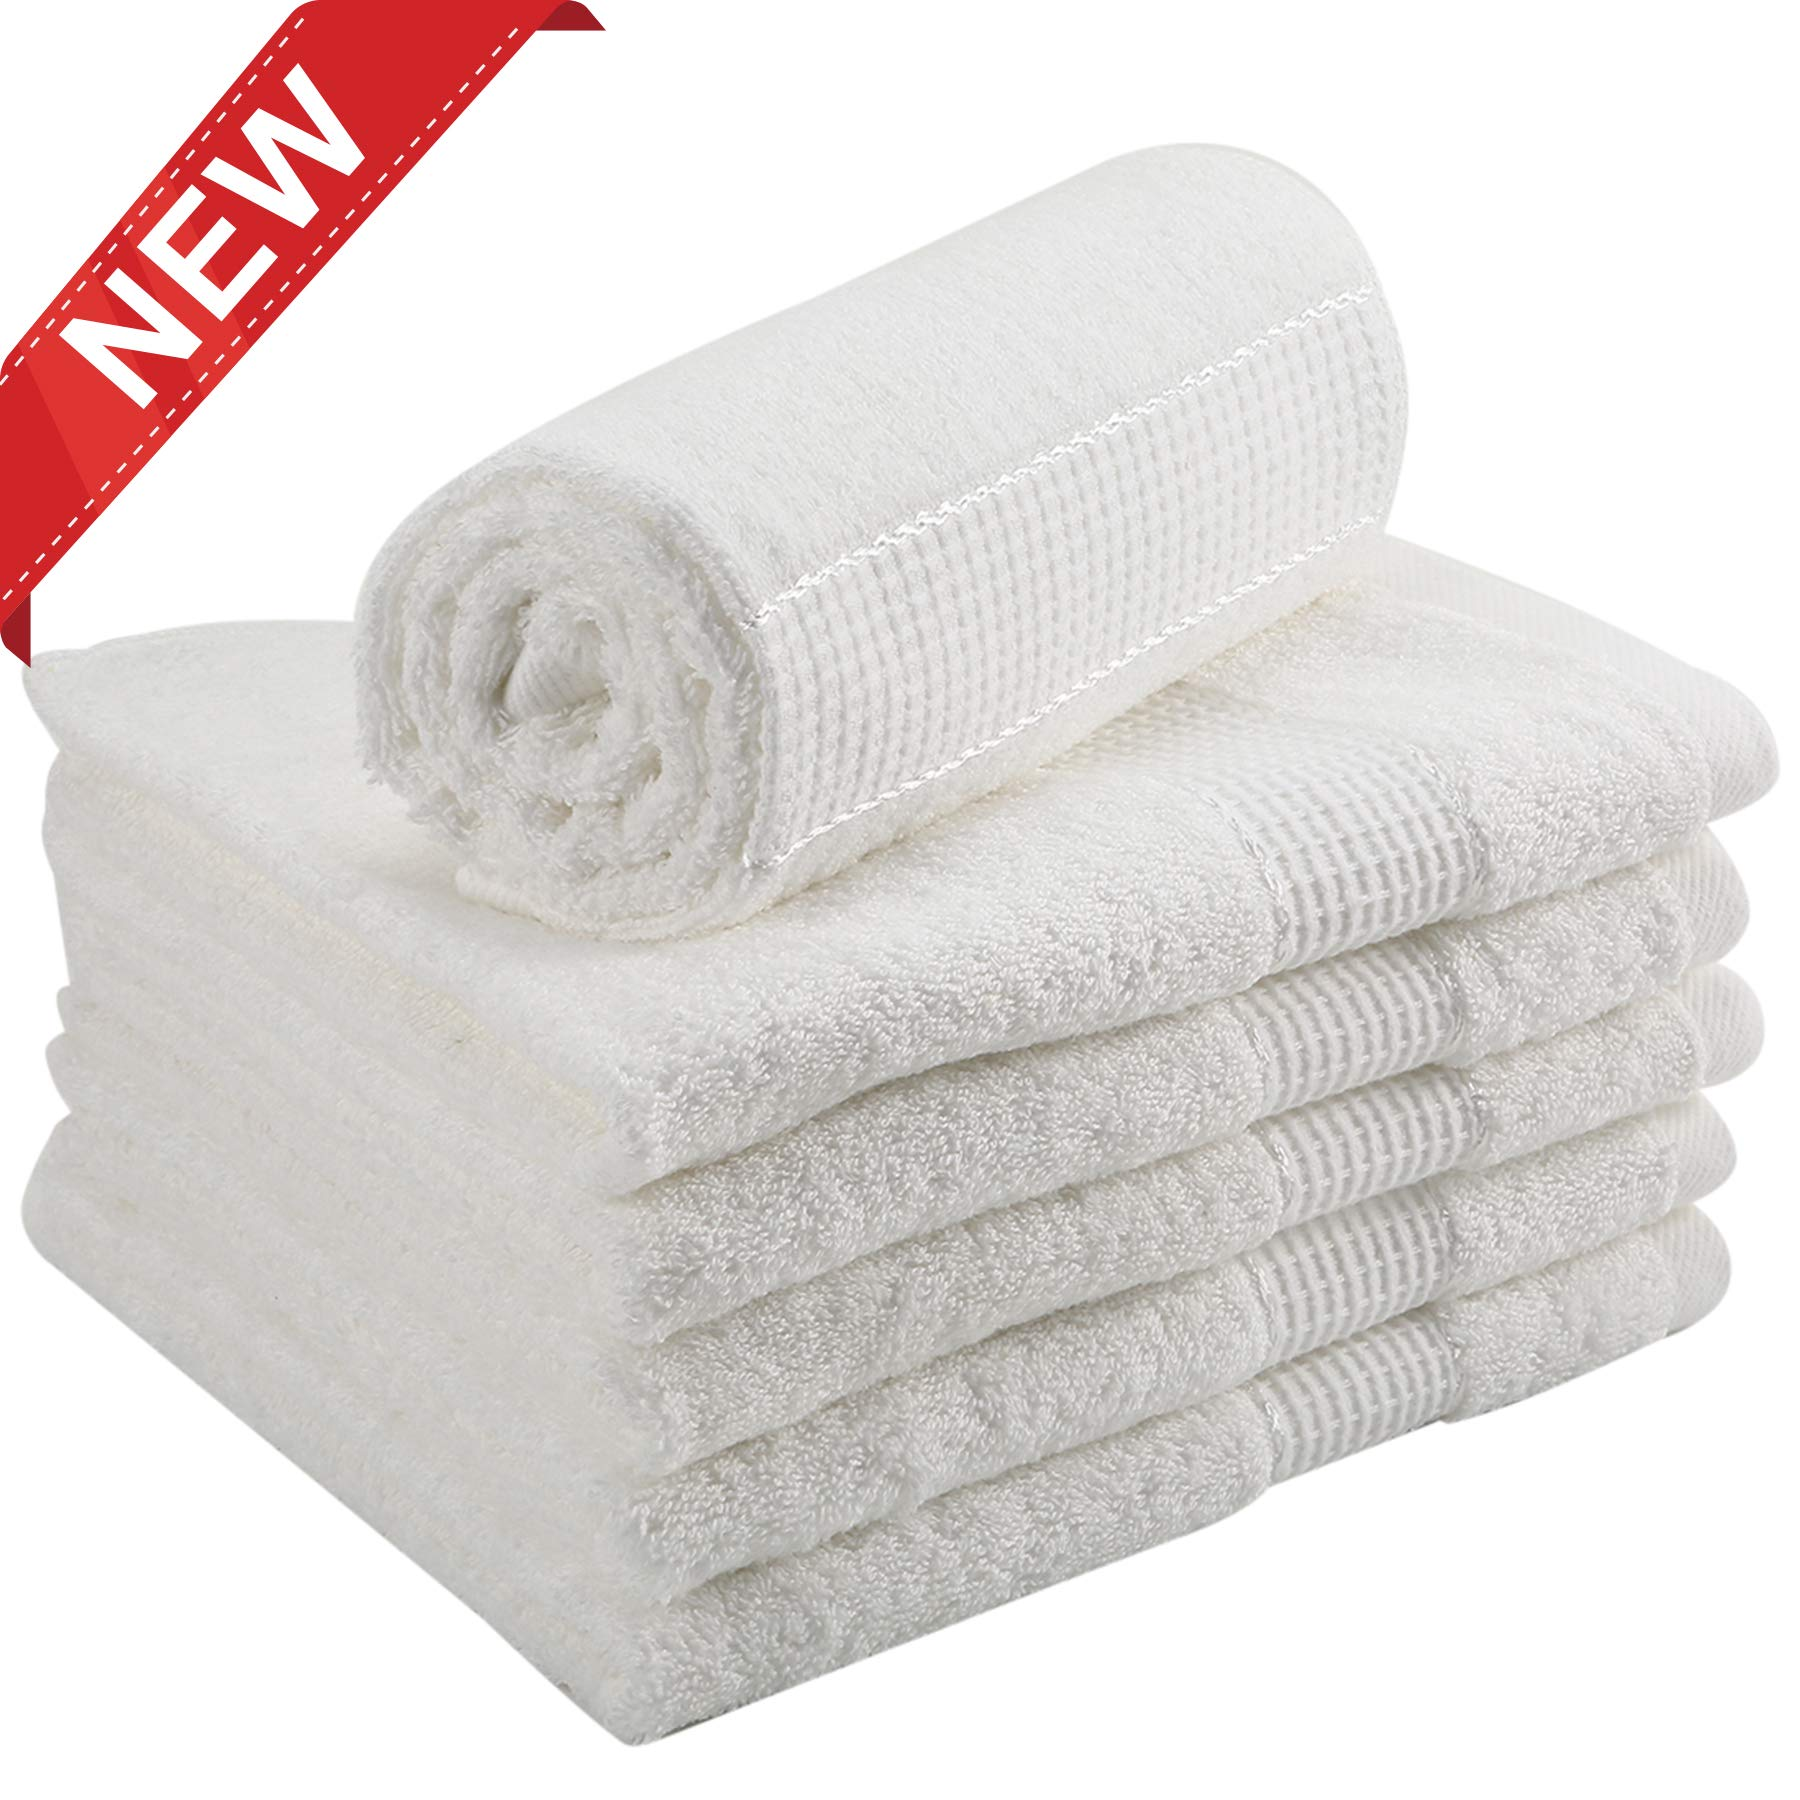 DOZZZ 6 Pack Egyptian Cotton Hand Towels Set for Bathroom Face Gym and Spa with Luxury Soft and Absorbent Hotel Quality